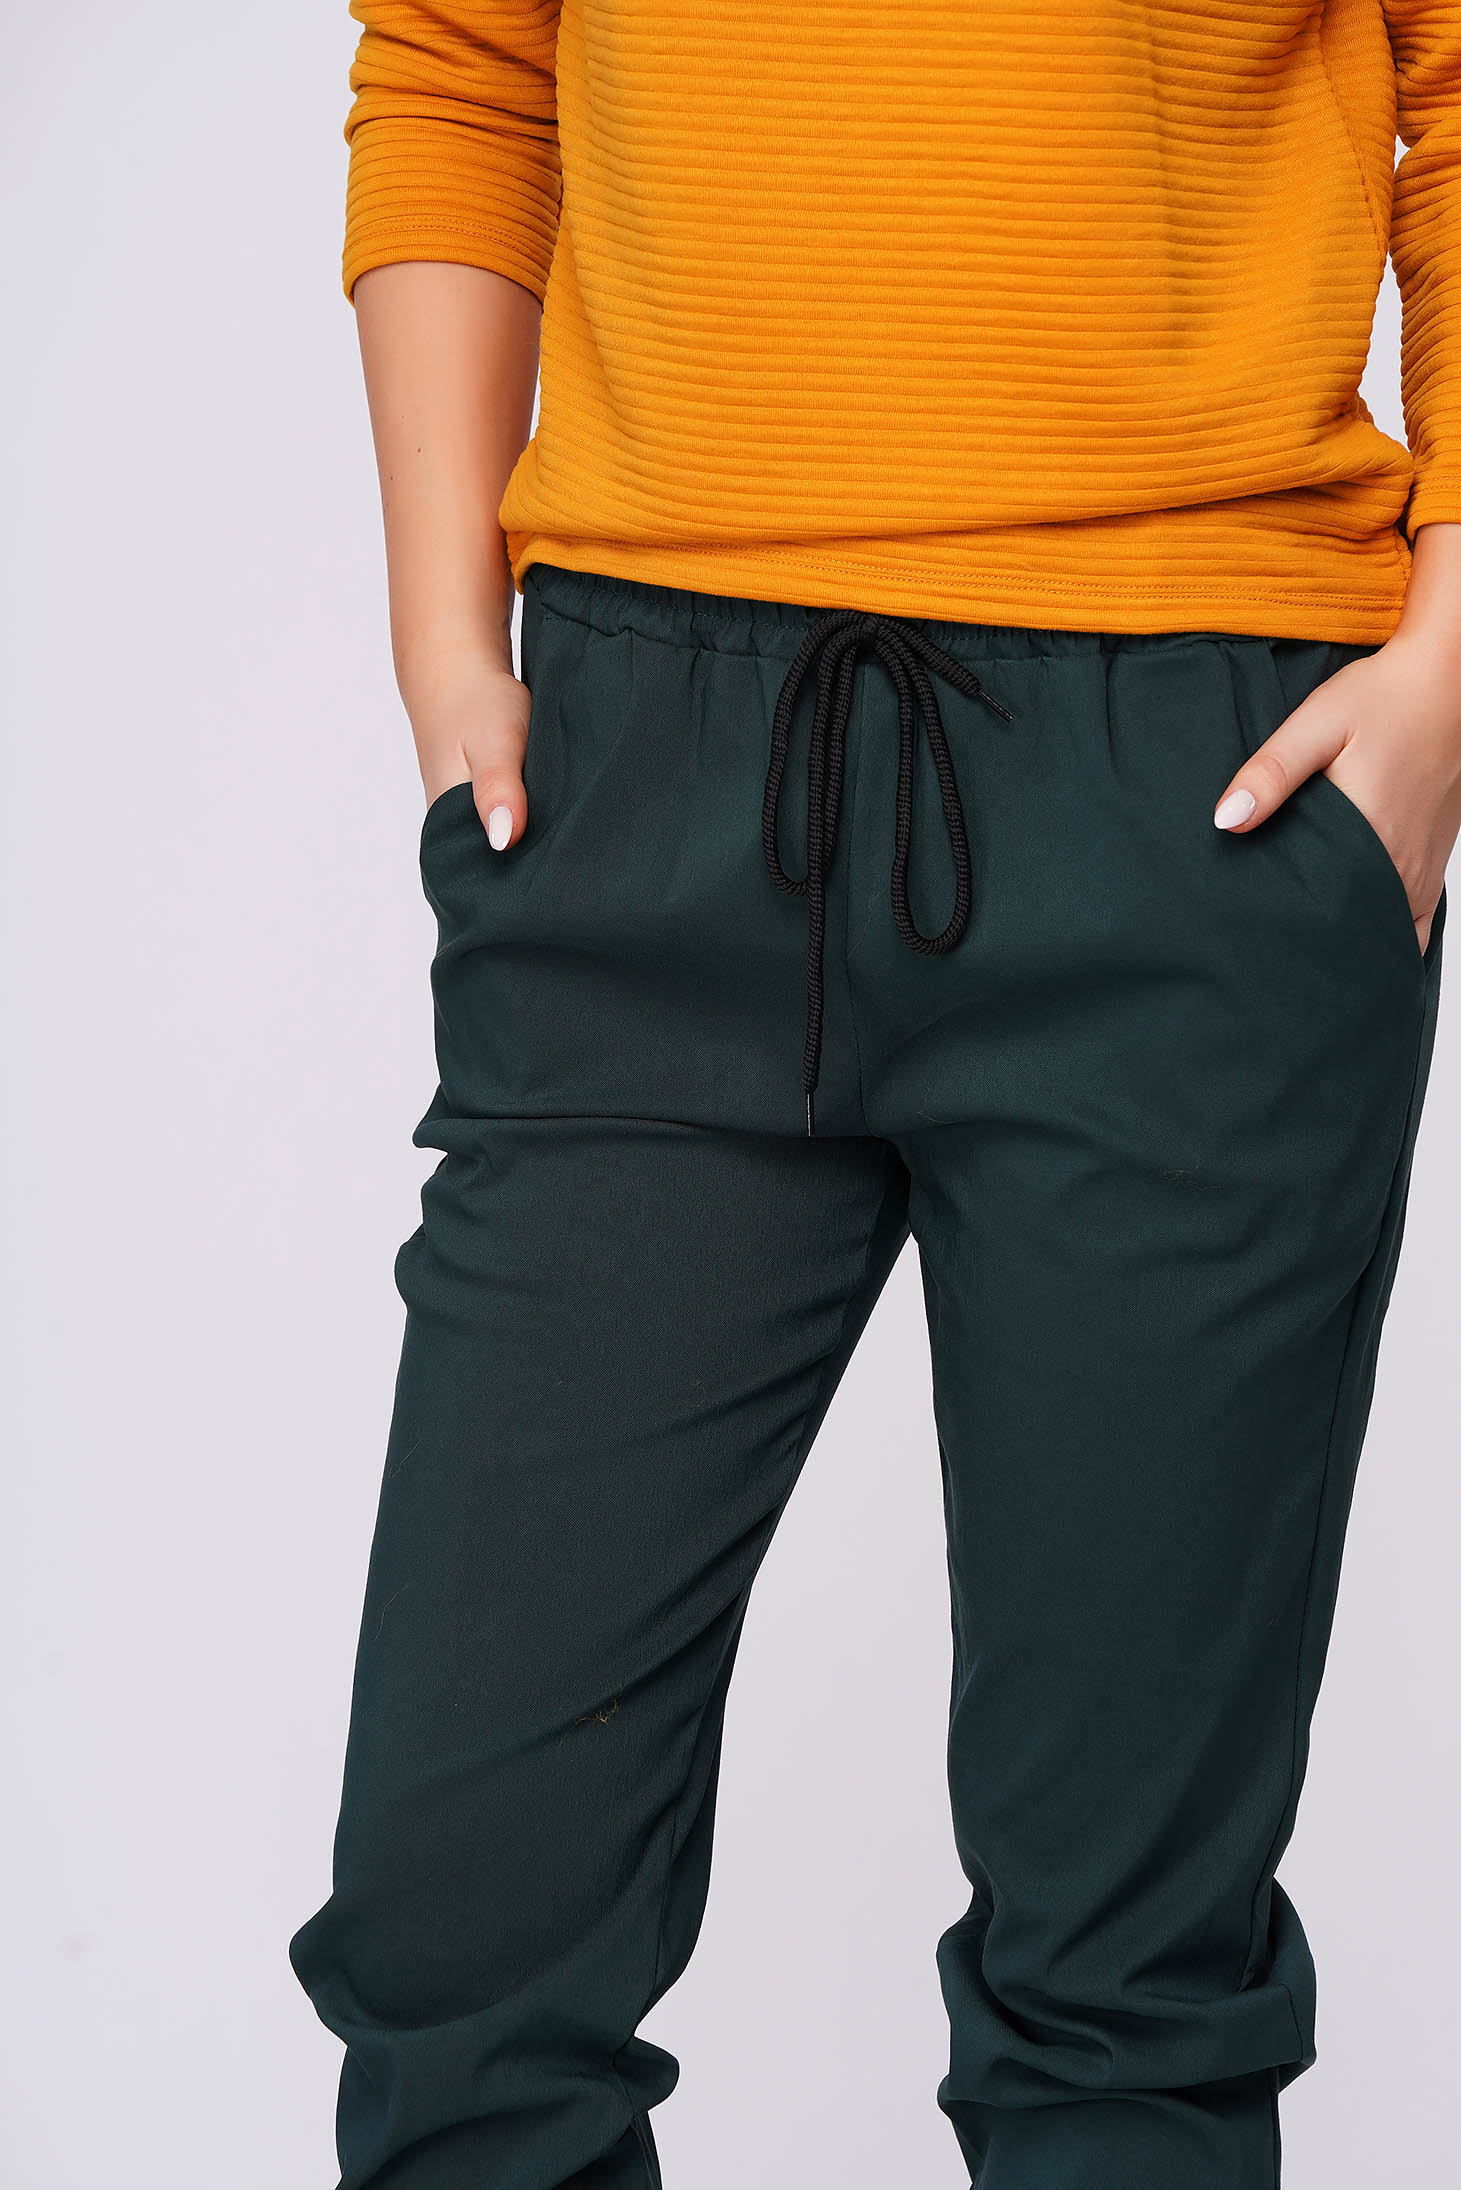 Green trousers with pockets with medium waist thin fabric